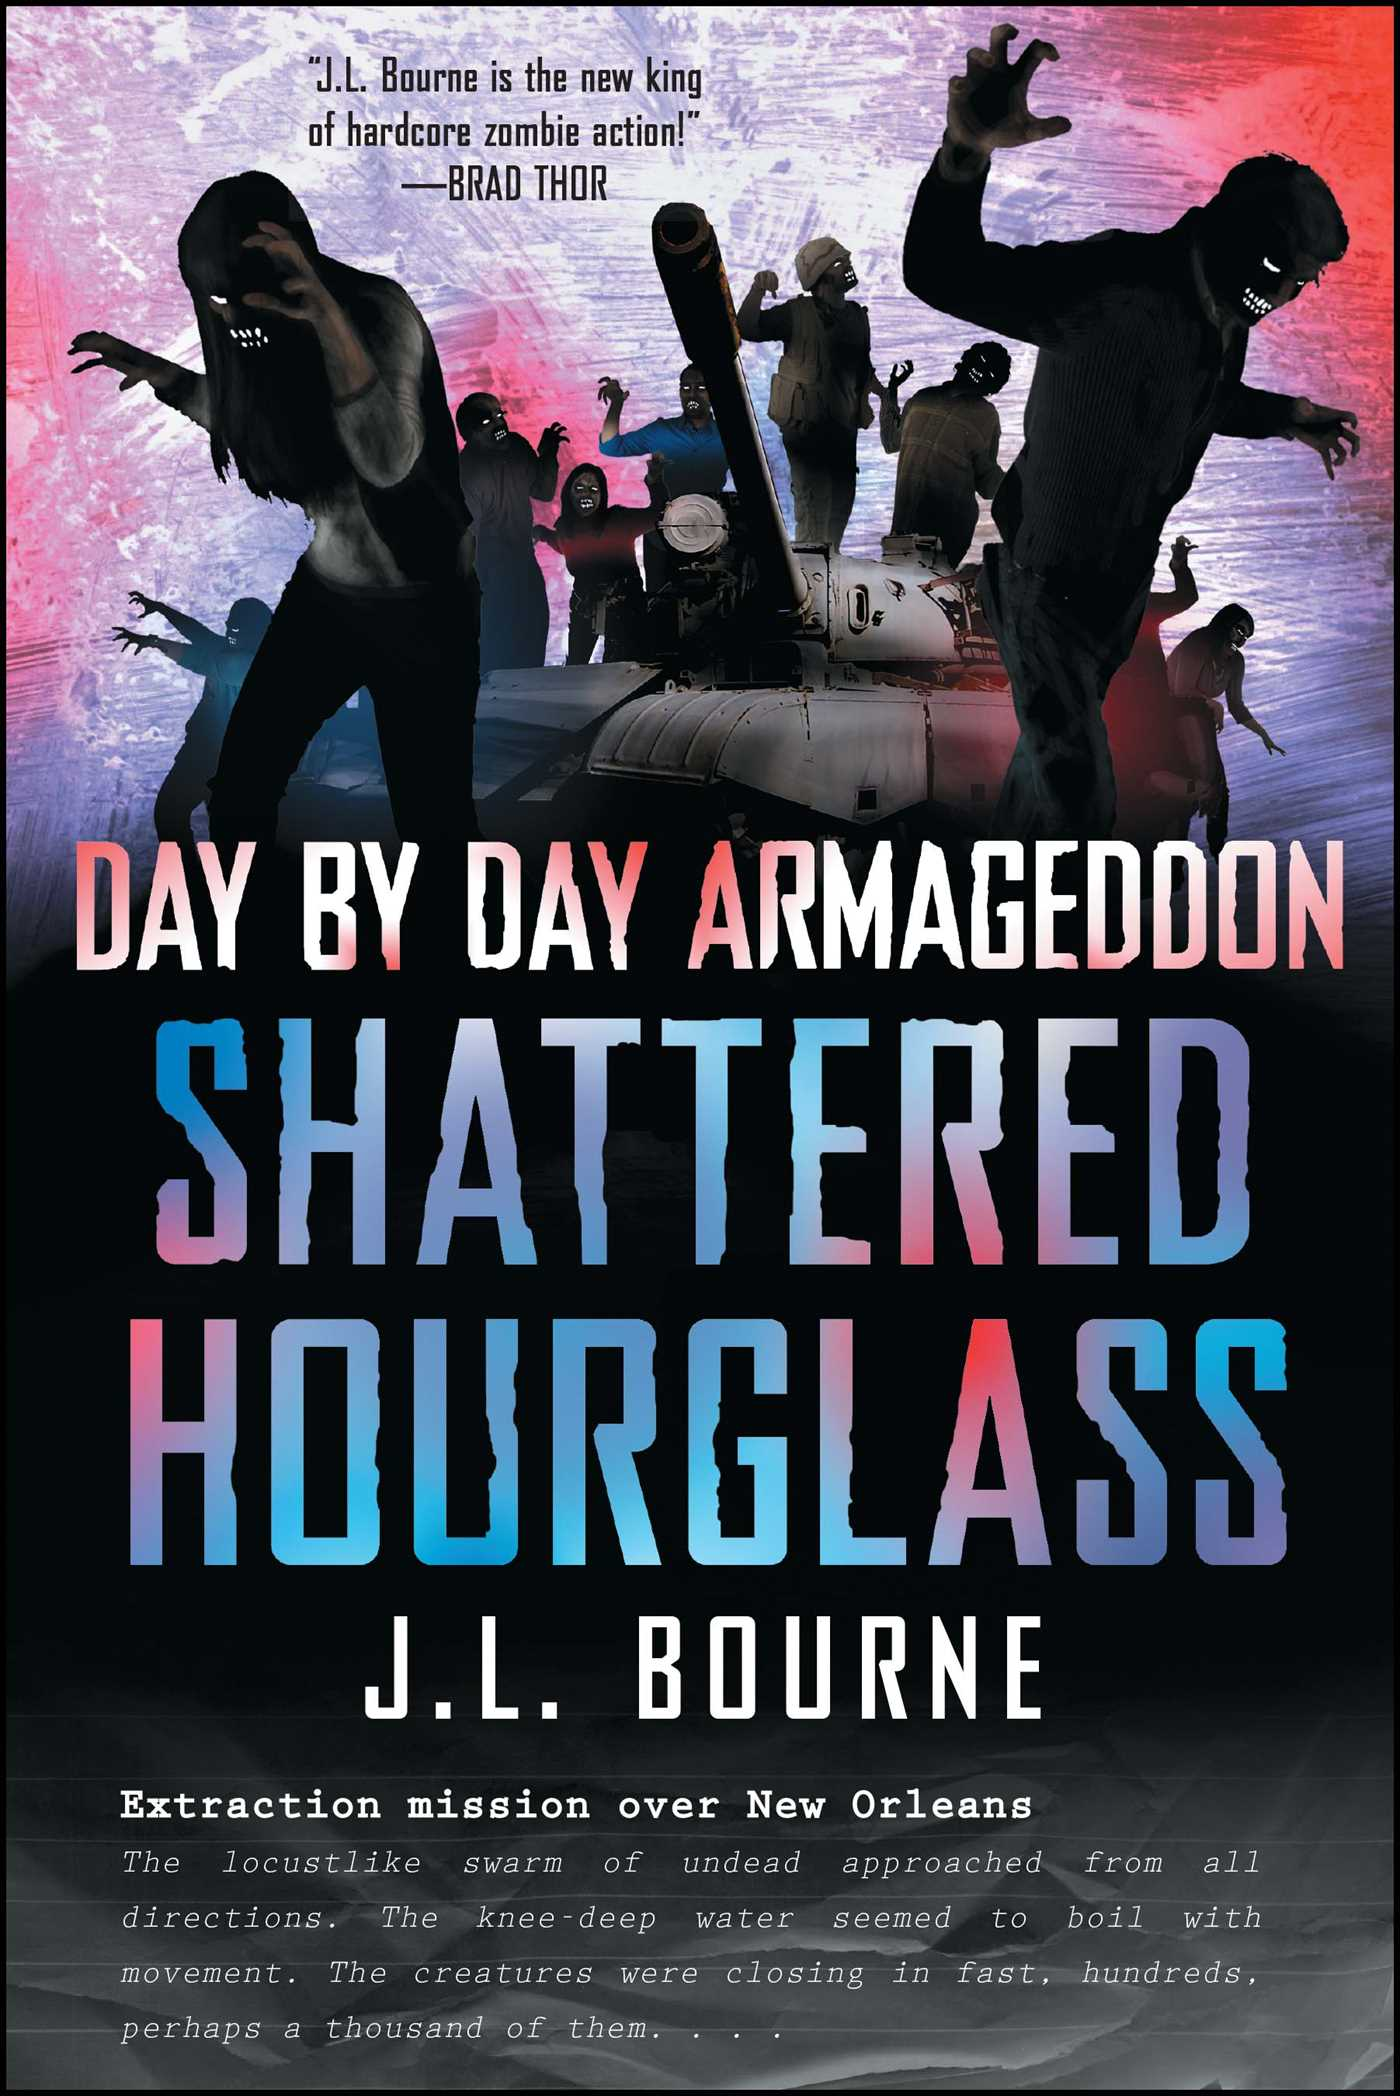 Day by day armageddon shattered hourglass 9781451628814 hr